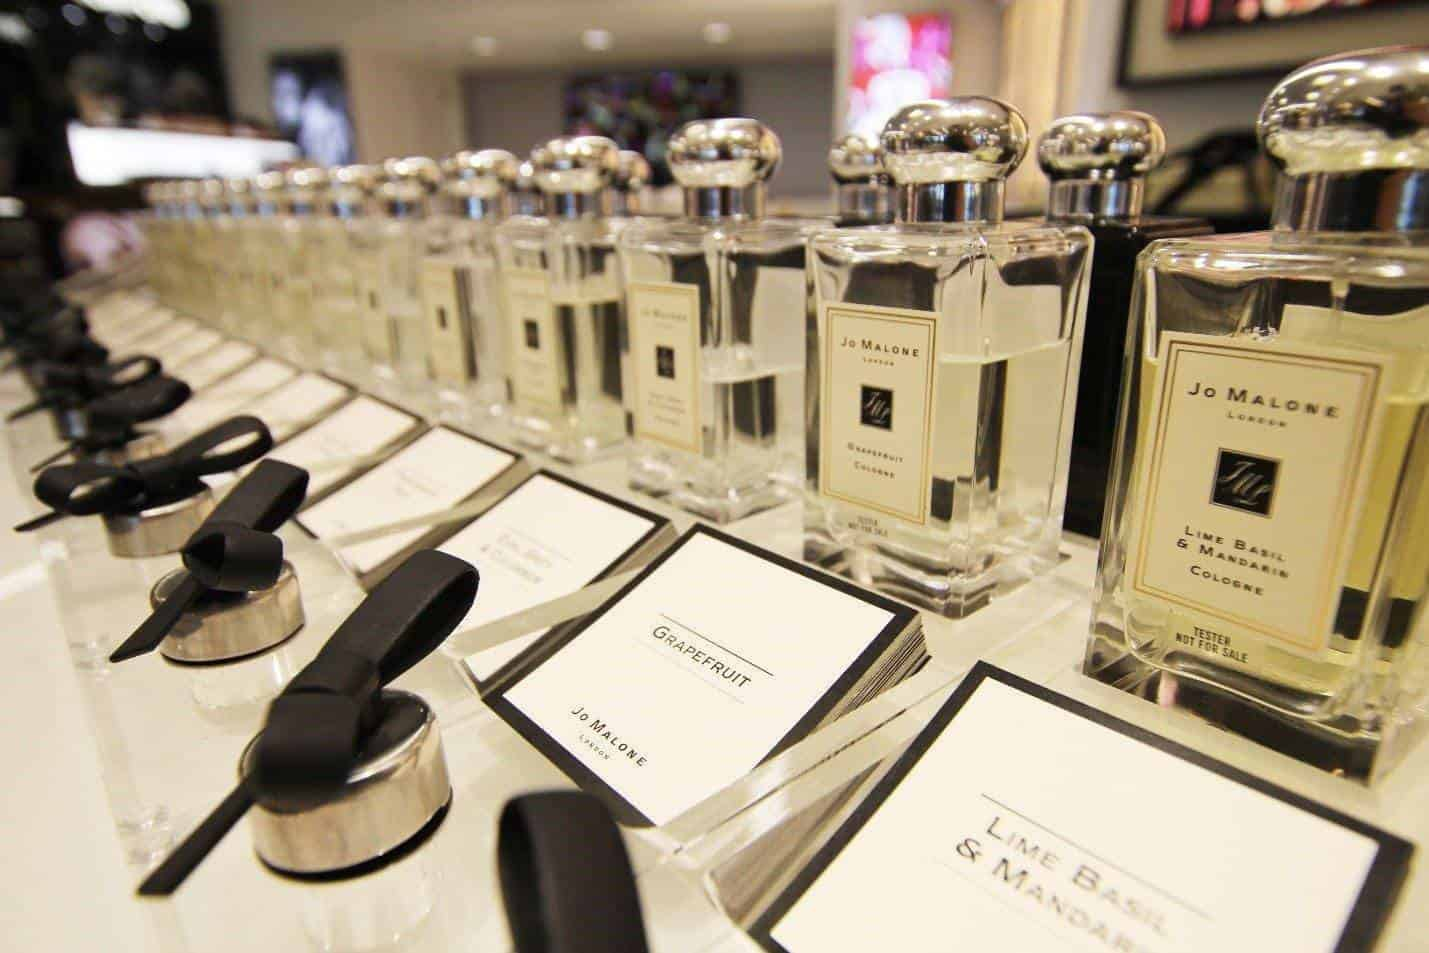 The audacious charm of Jo Malone